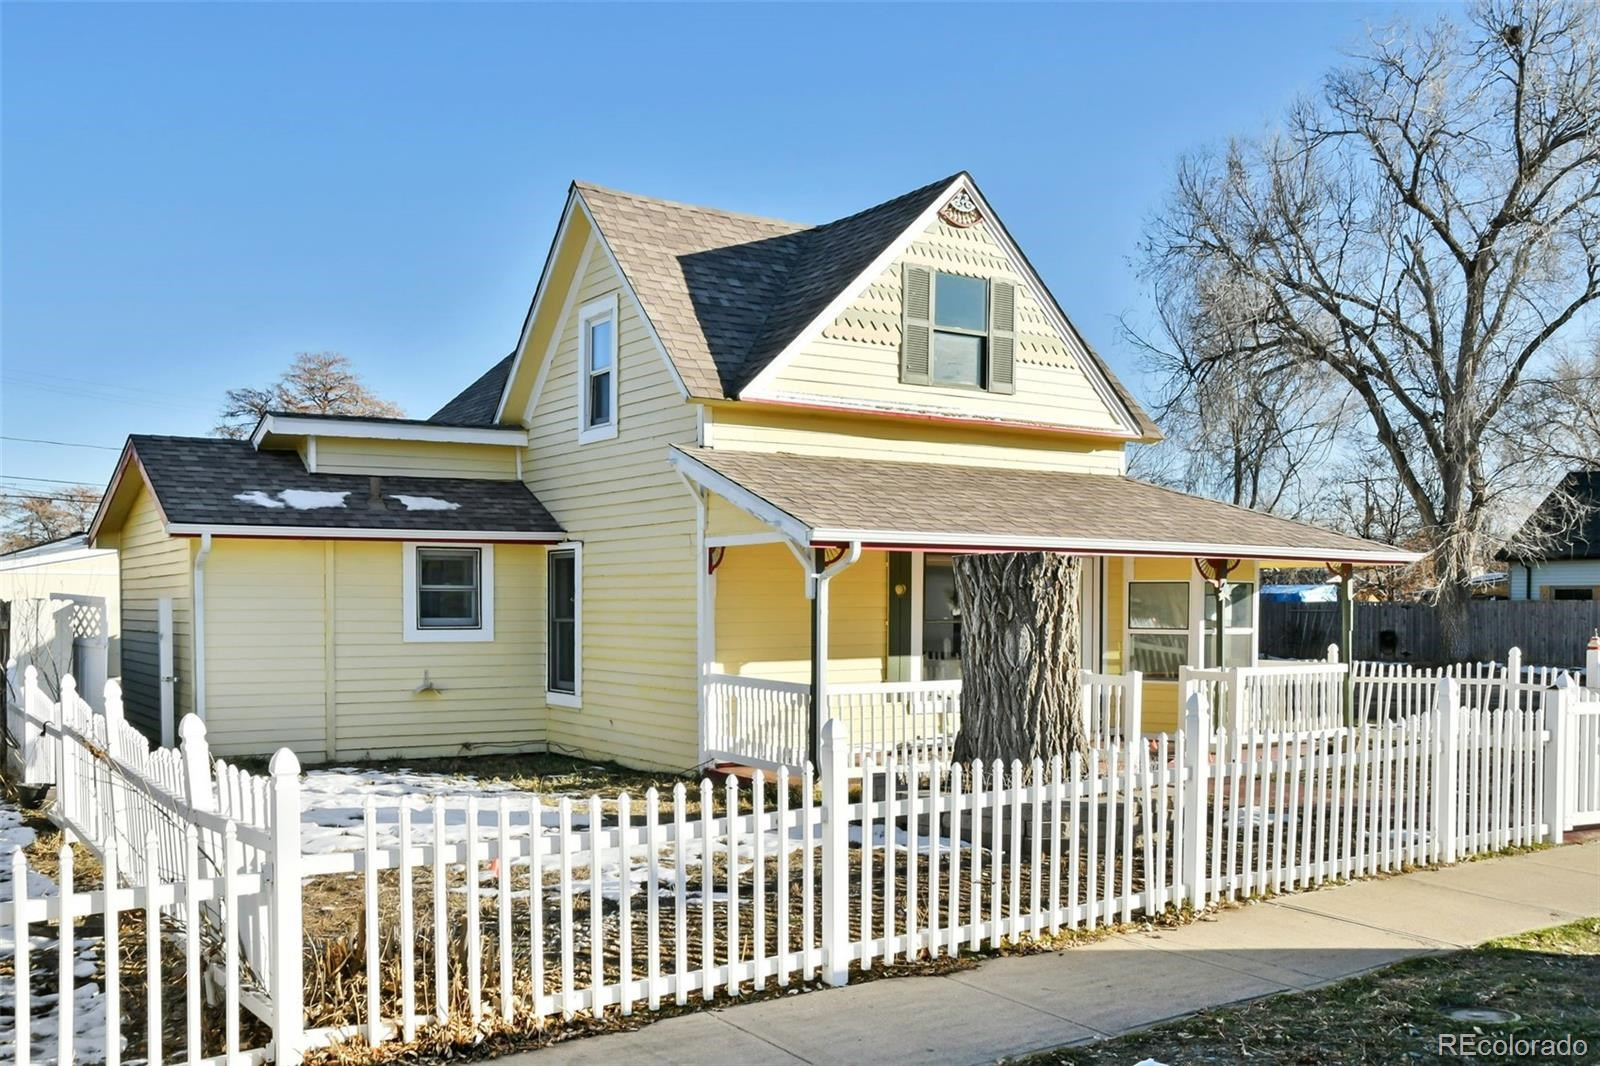 MLS# 2703871 - 2 - 202 N 5th Avenue, Brighton, CO 80601